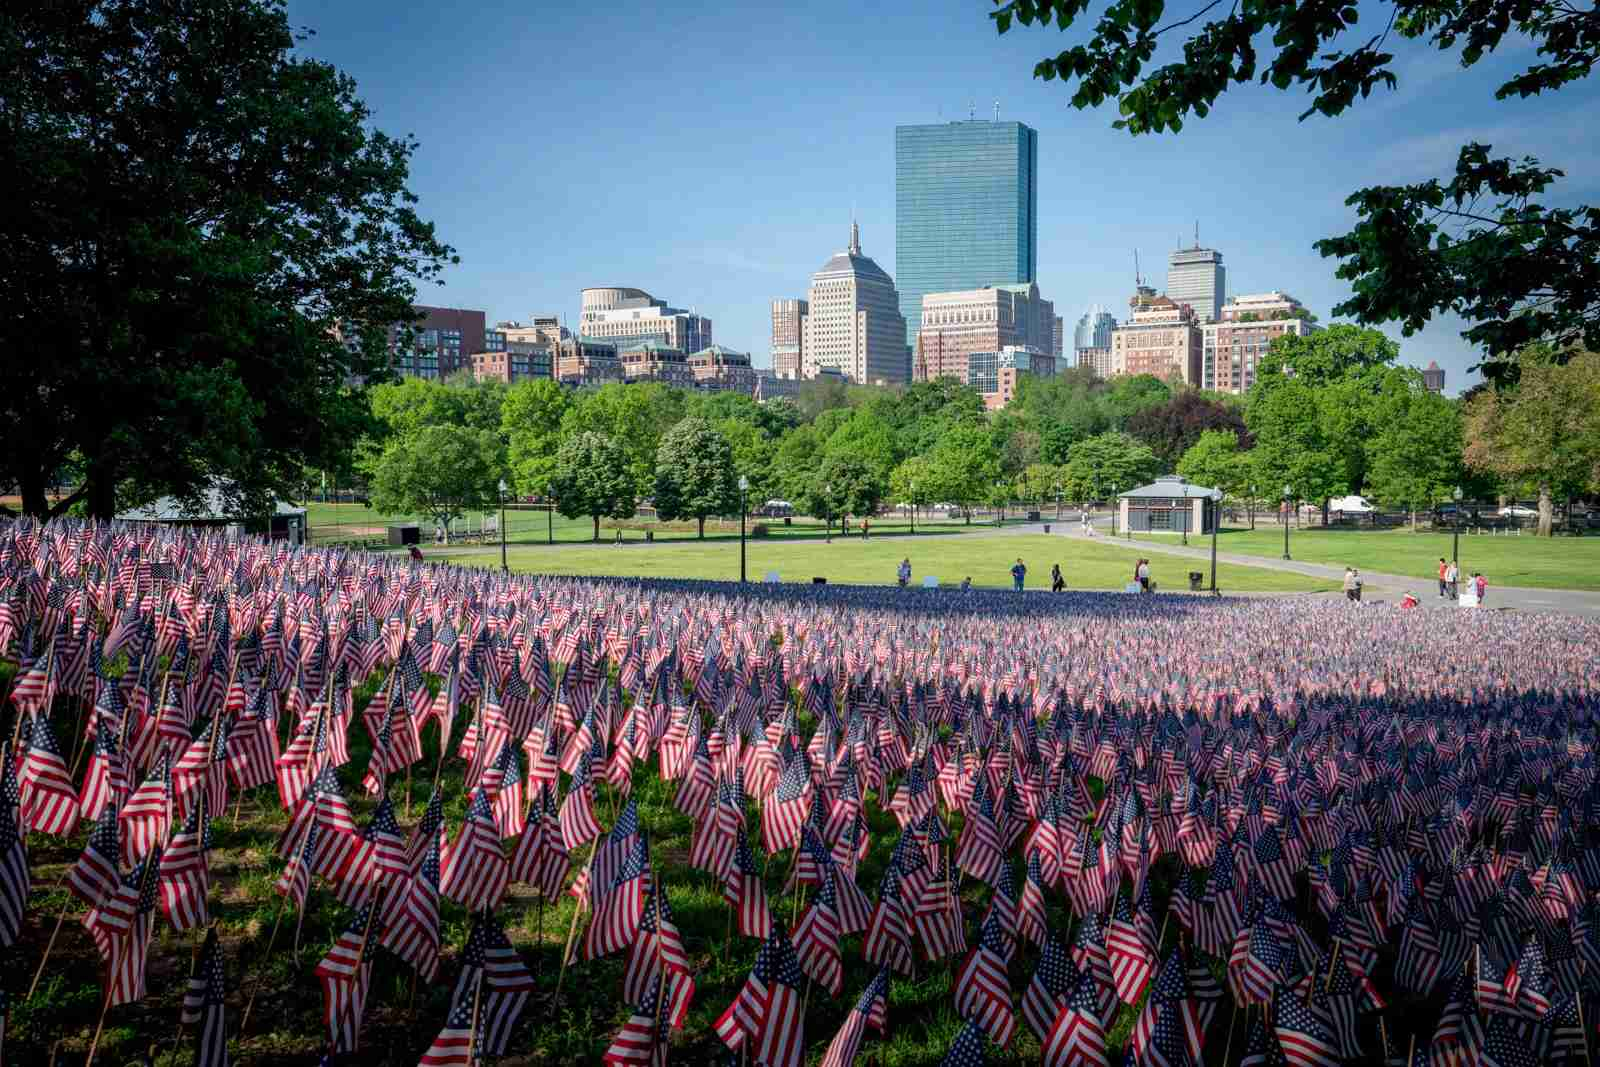 American flags in the Boston Common in spring. (Photo by Michael Skok/Unsplash)